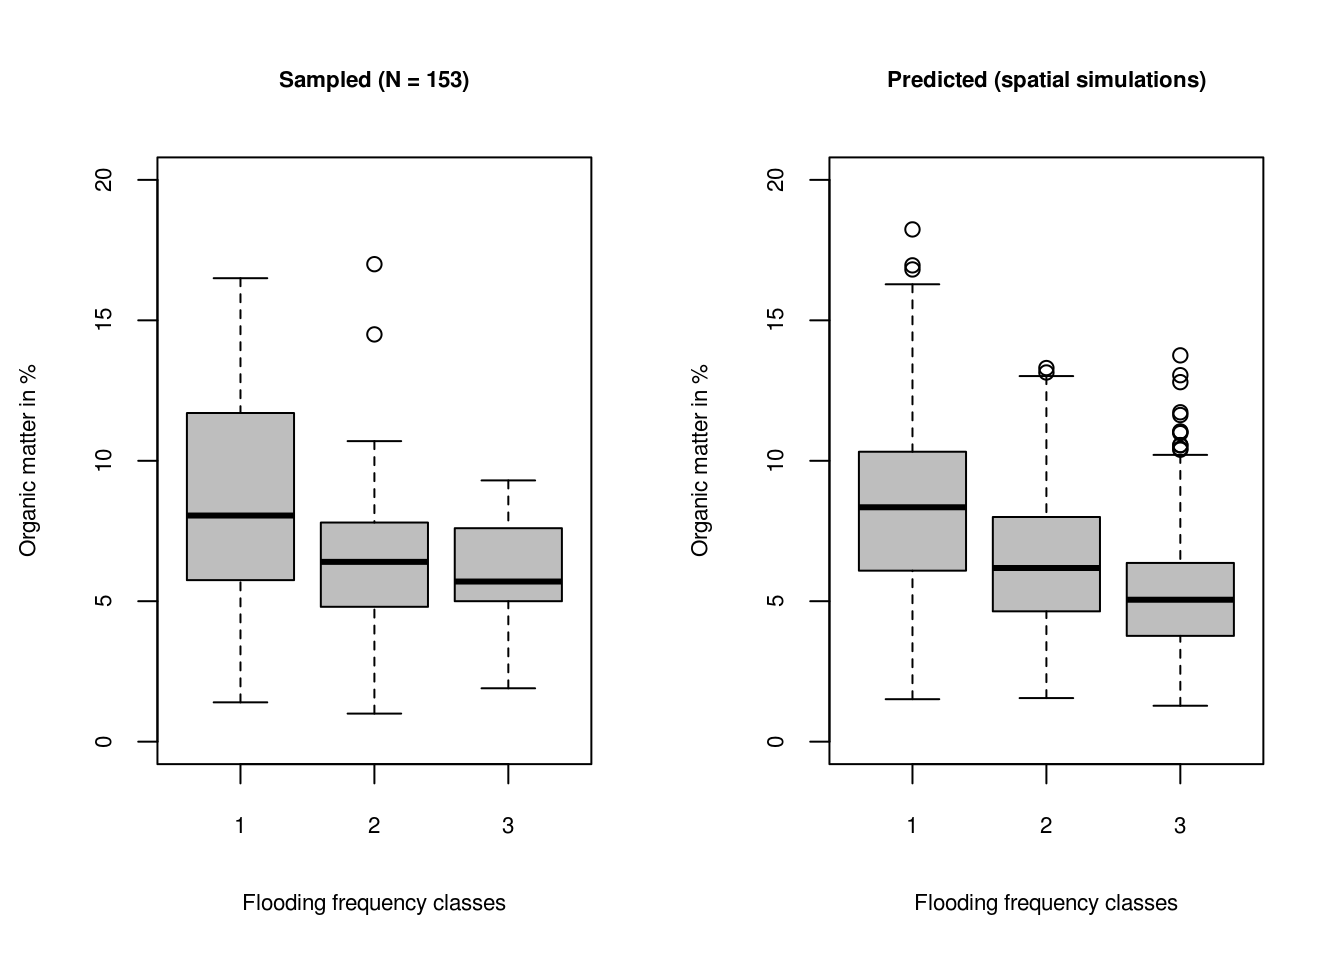 Prediction intervals for three flooding frequency classes for sampled and predicted soil organic matter. The grey boxes show 1st and 3rd quantiles i.e. range where of data falls.